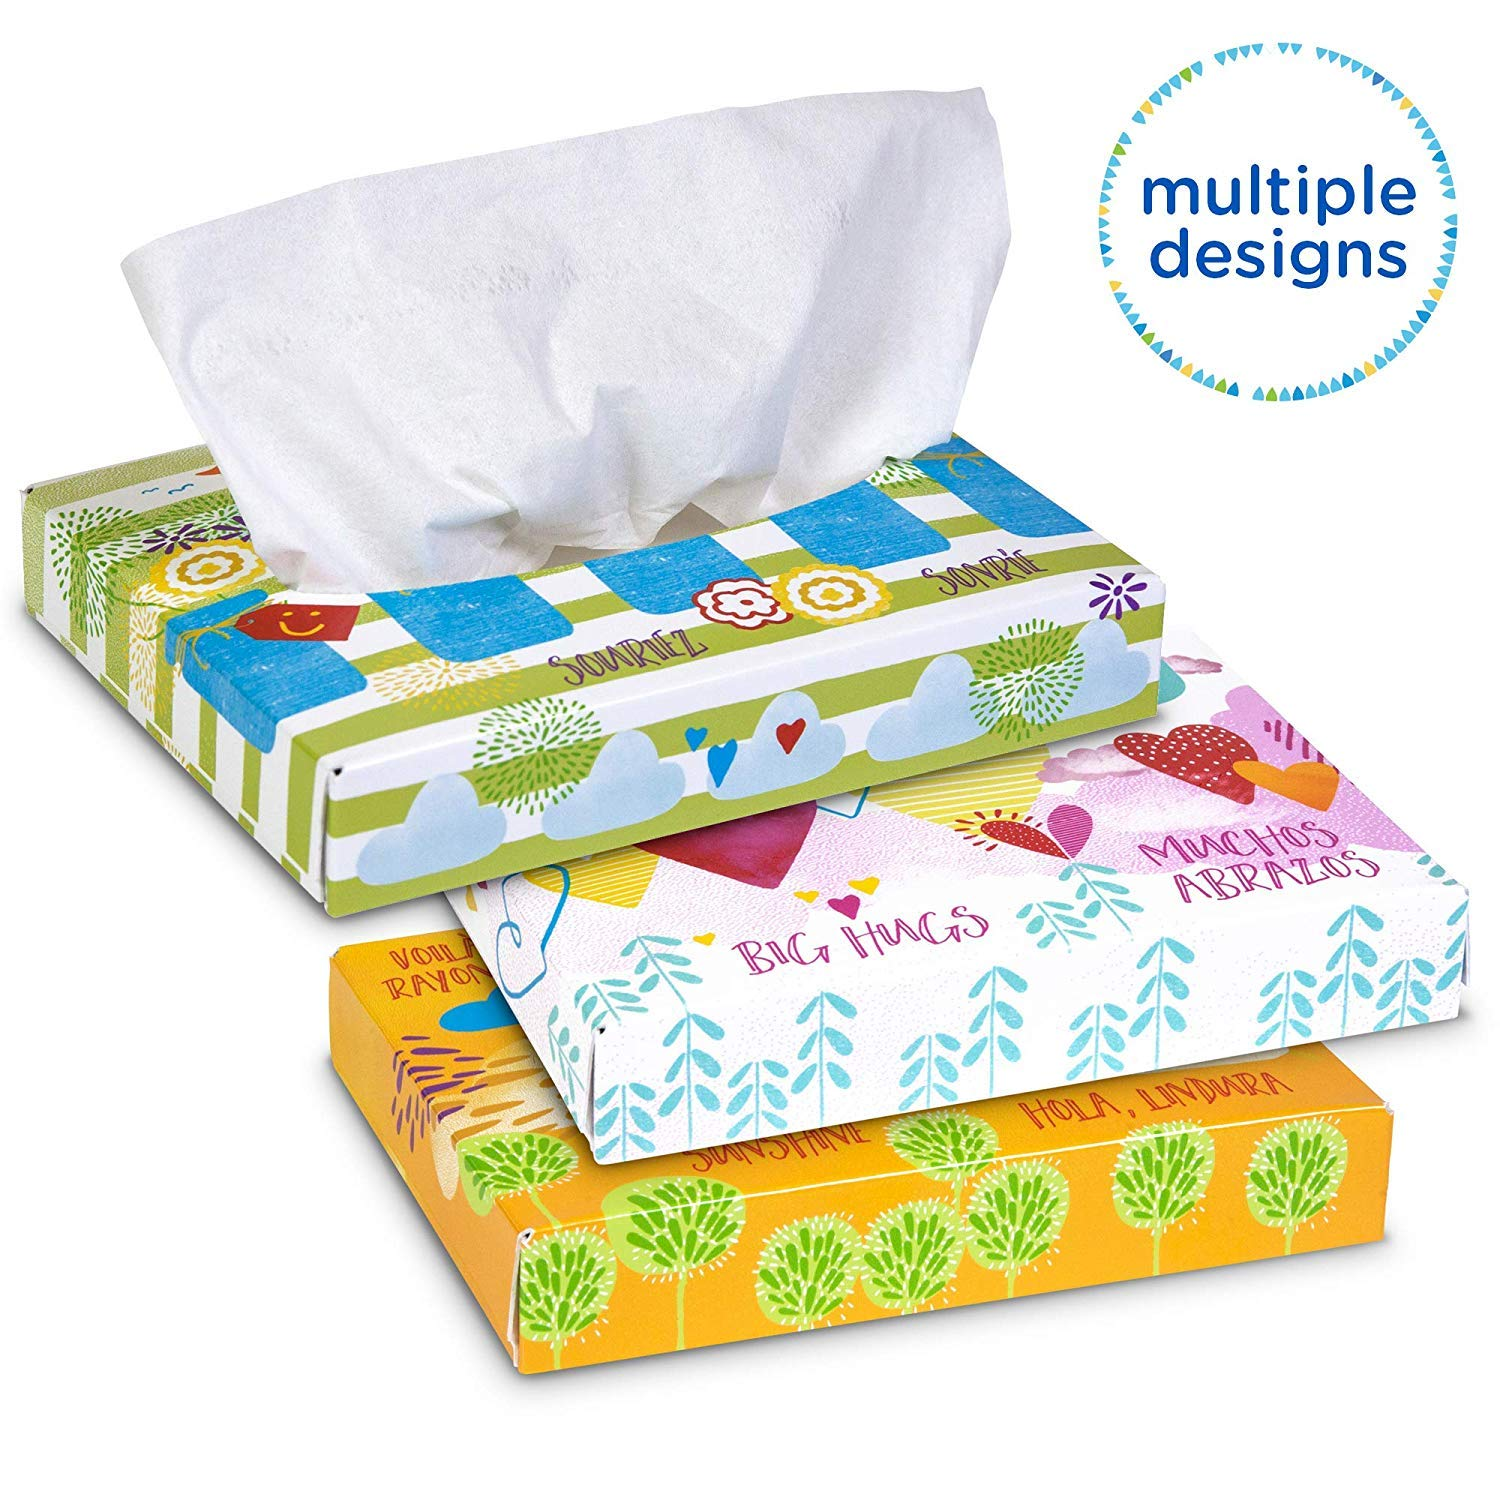 Kleenex Professional Facial Tissue for Business (21195), Flat Tissue Boxes, 80 Junior Boxes/Case, 40 Tissues/Box by Kimberly-Clark Professional (Image #5)